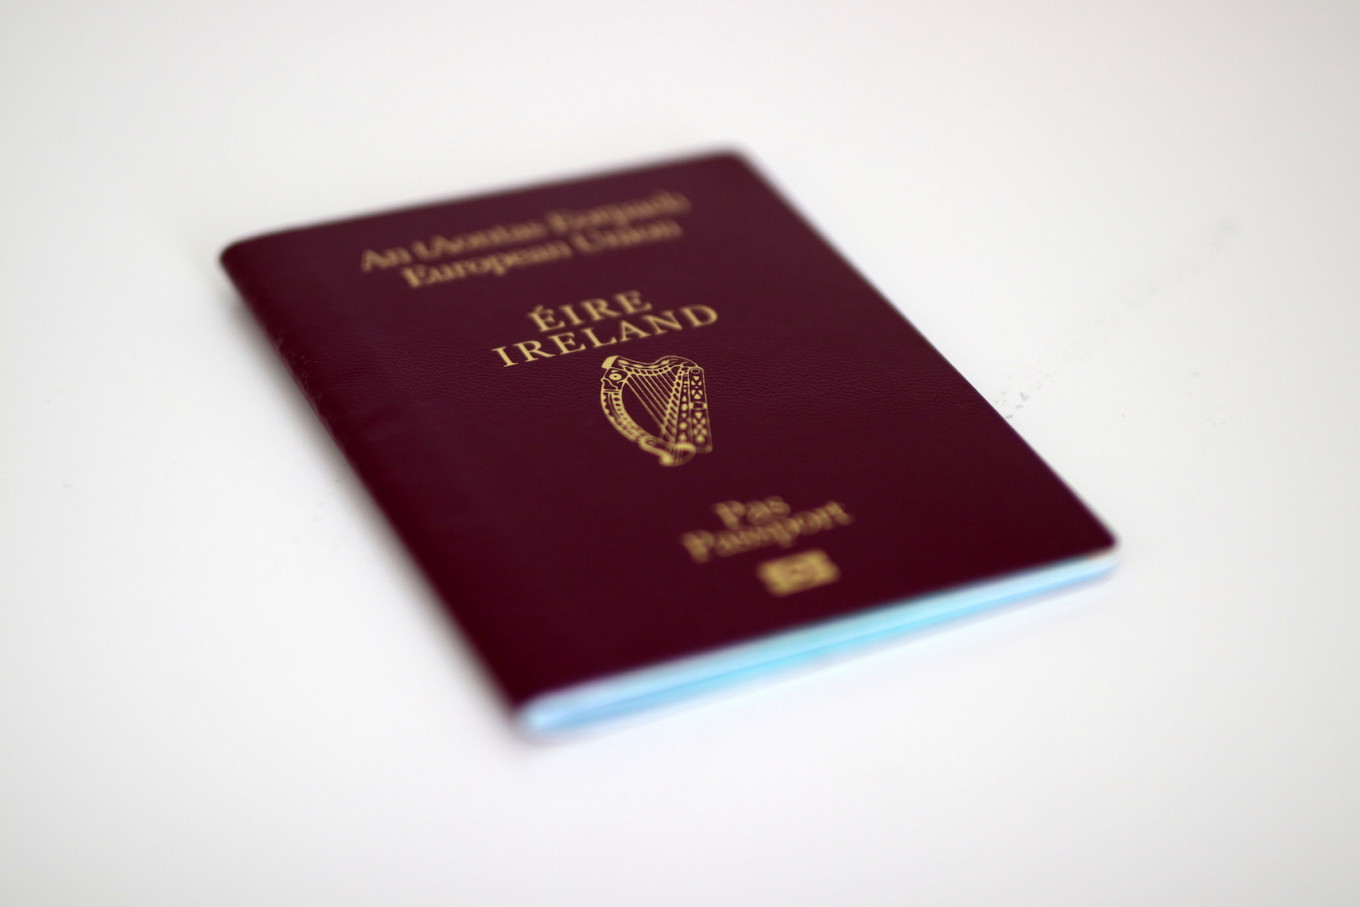 Passport officials expect 1.1m British requests next year